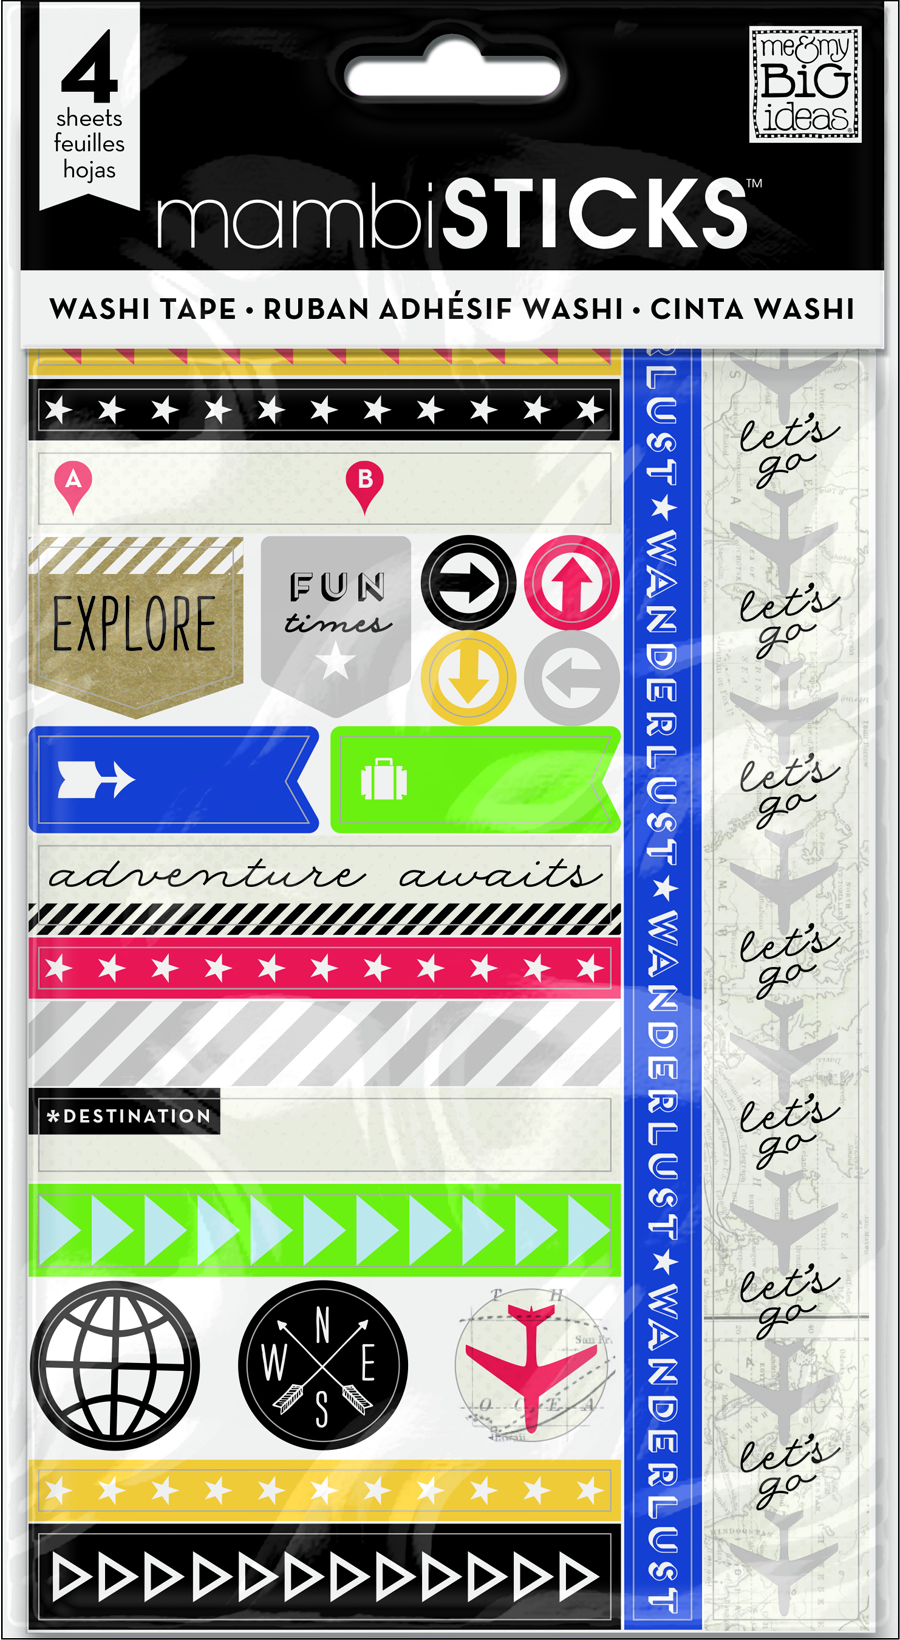 'Let's Go' washi tape mambiSTICKS stickers | me & my BIG ideas.jpg